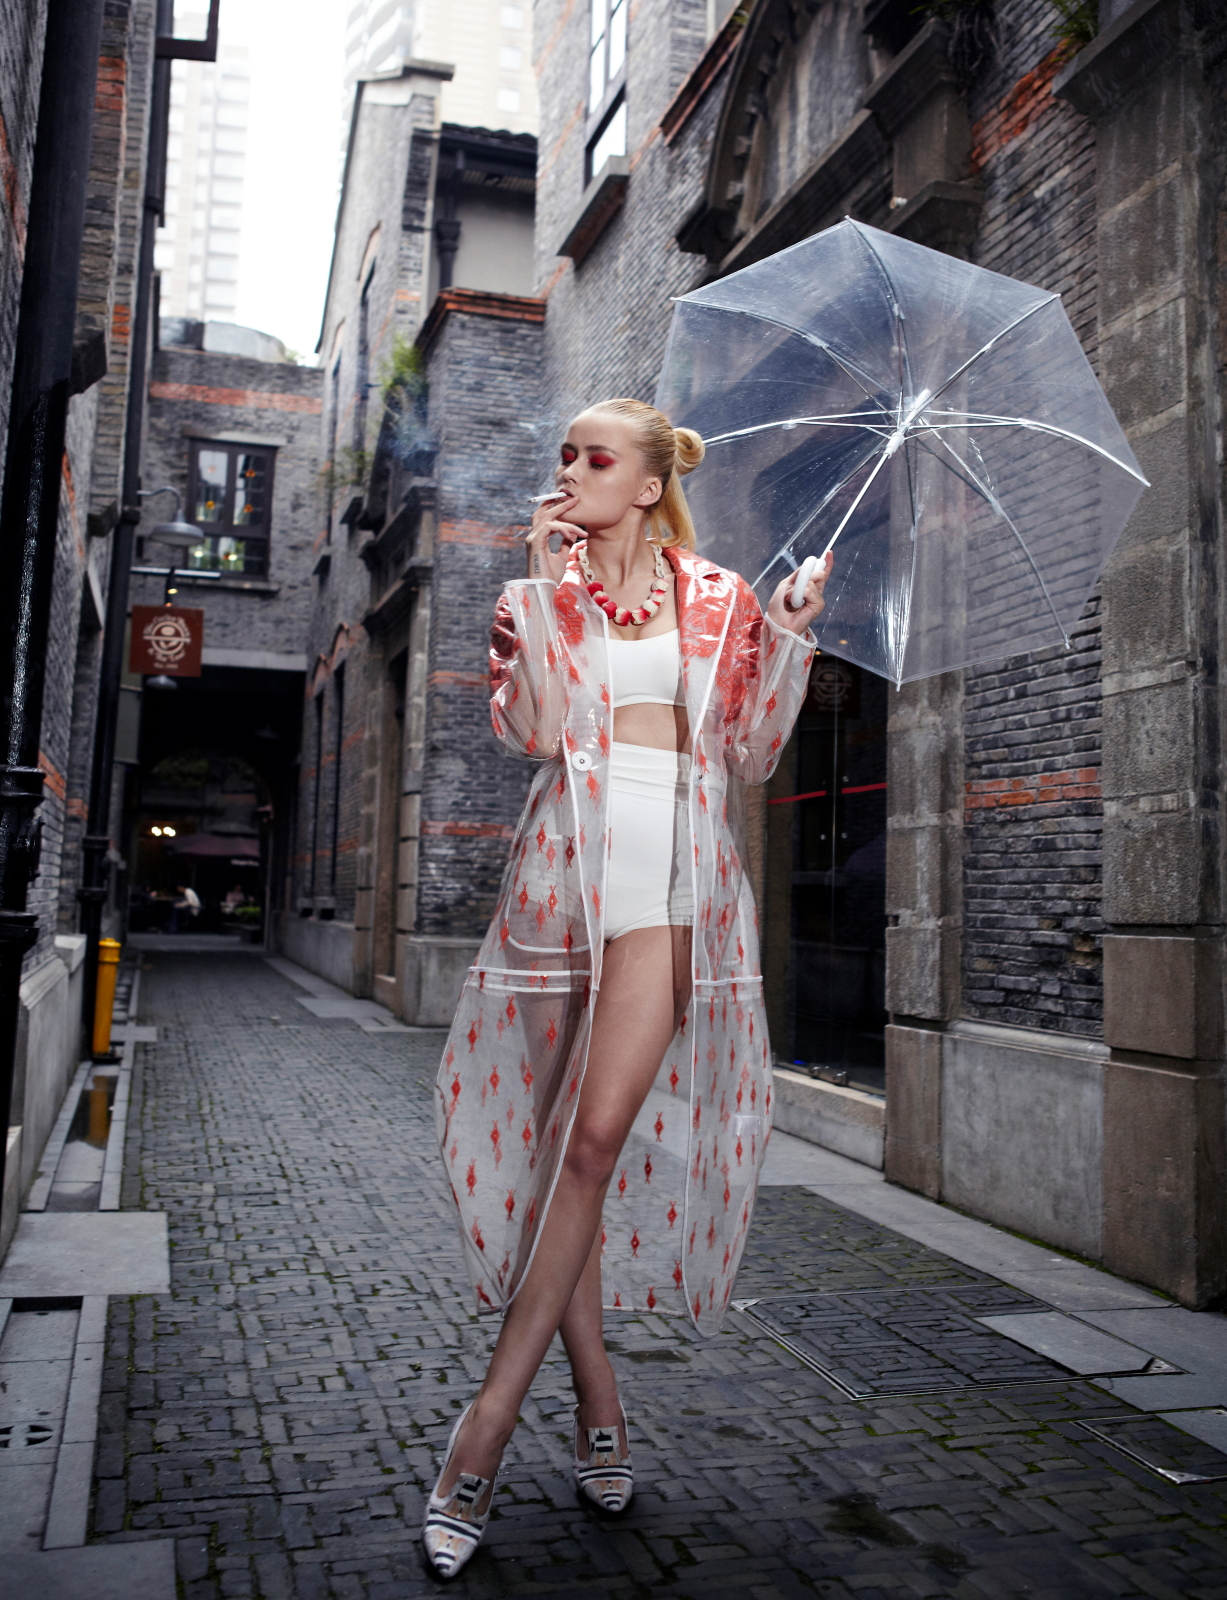 Fashion Photography By Yocky Zhang Direct From Shanghai